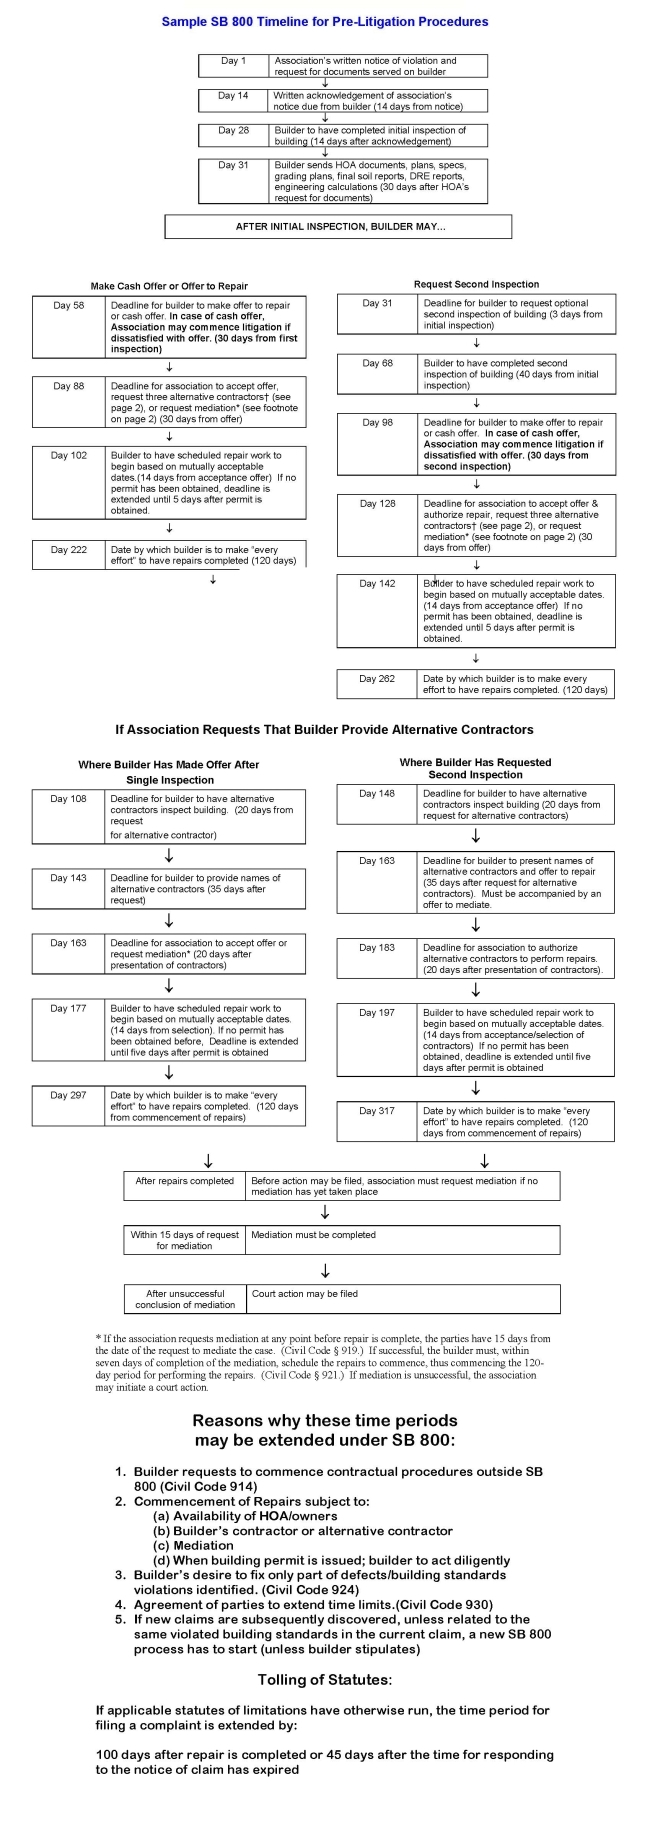 Sample SB800 Timeline for Pre-Litigation Procedures